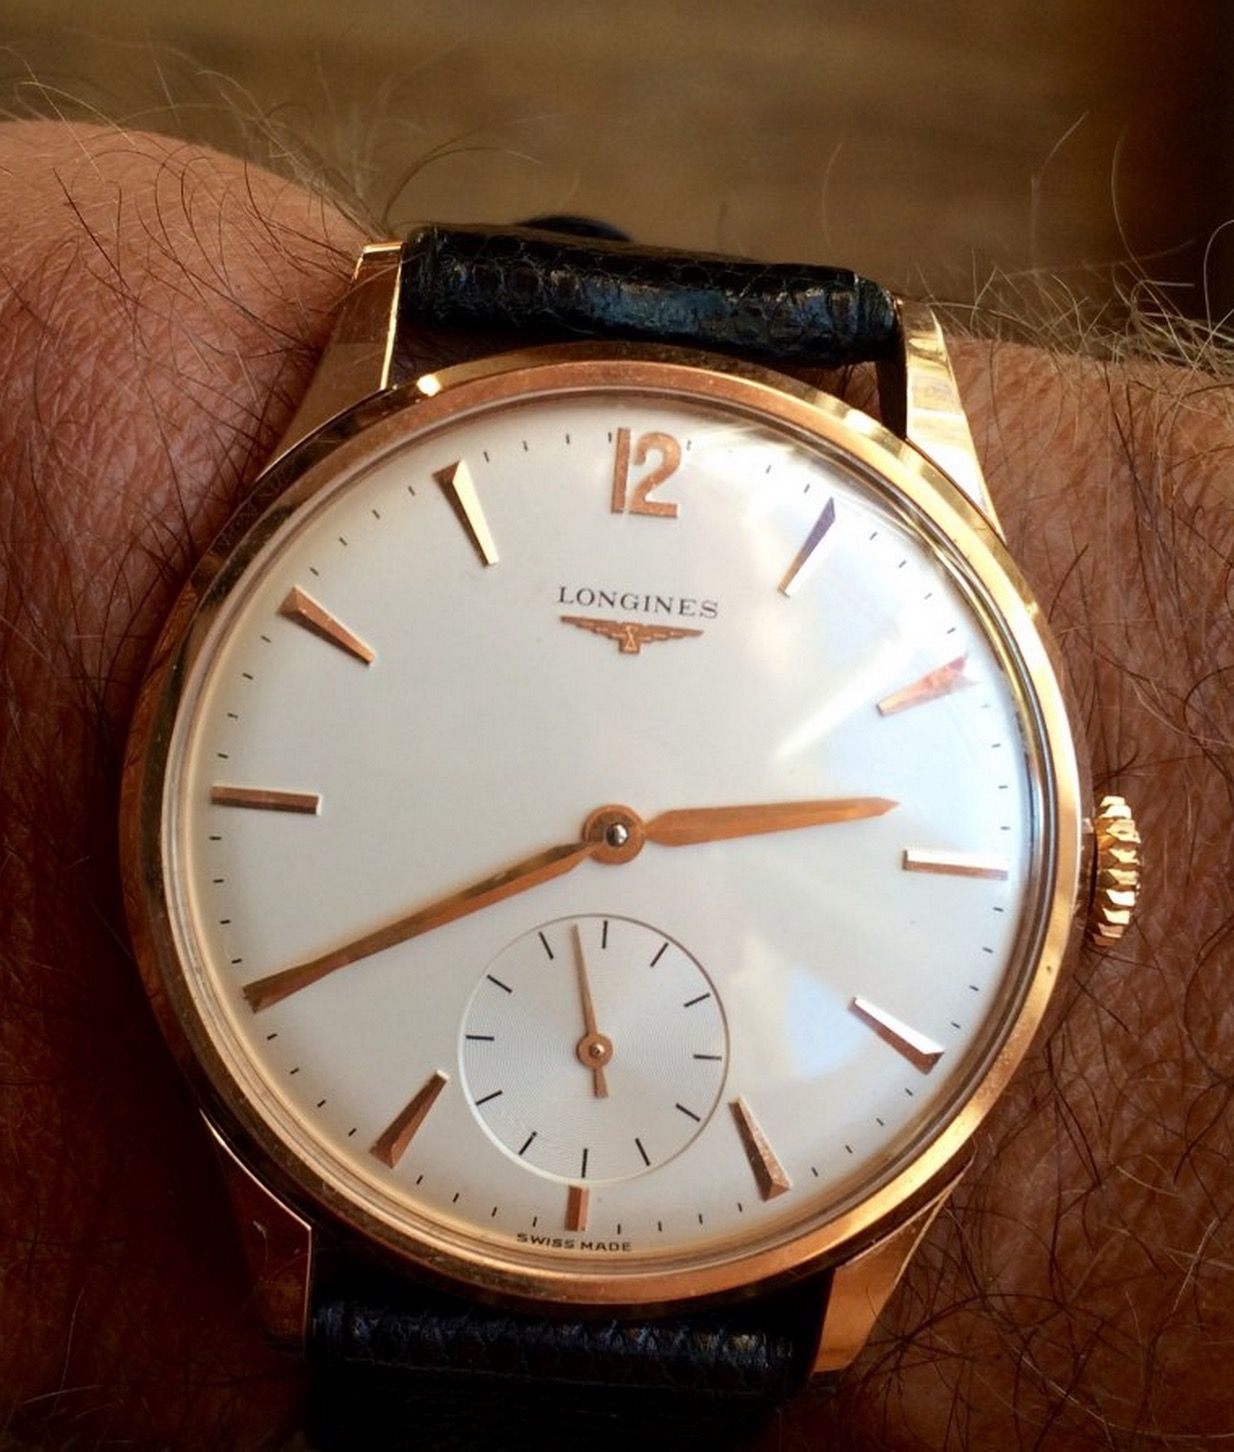 Superb vintage longines hand wound dress watch in gold circa 1950s my style in 2019 watches for Vintage gold watch